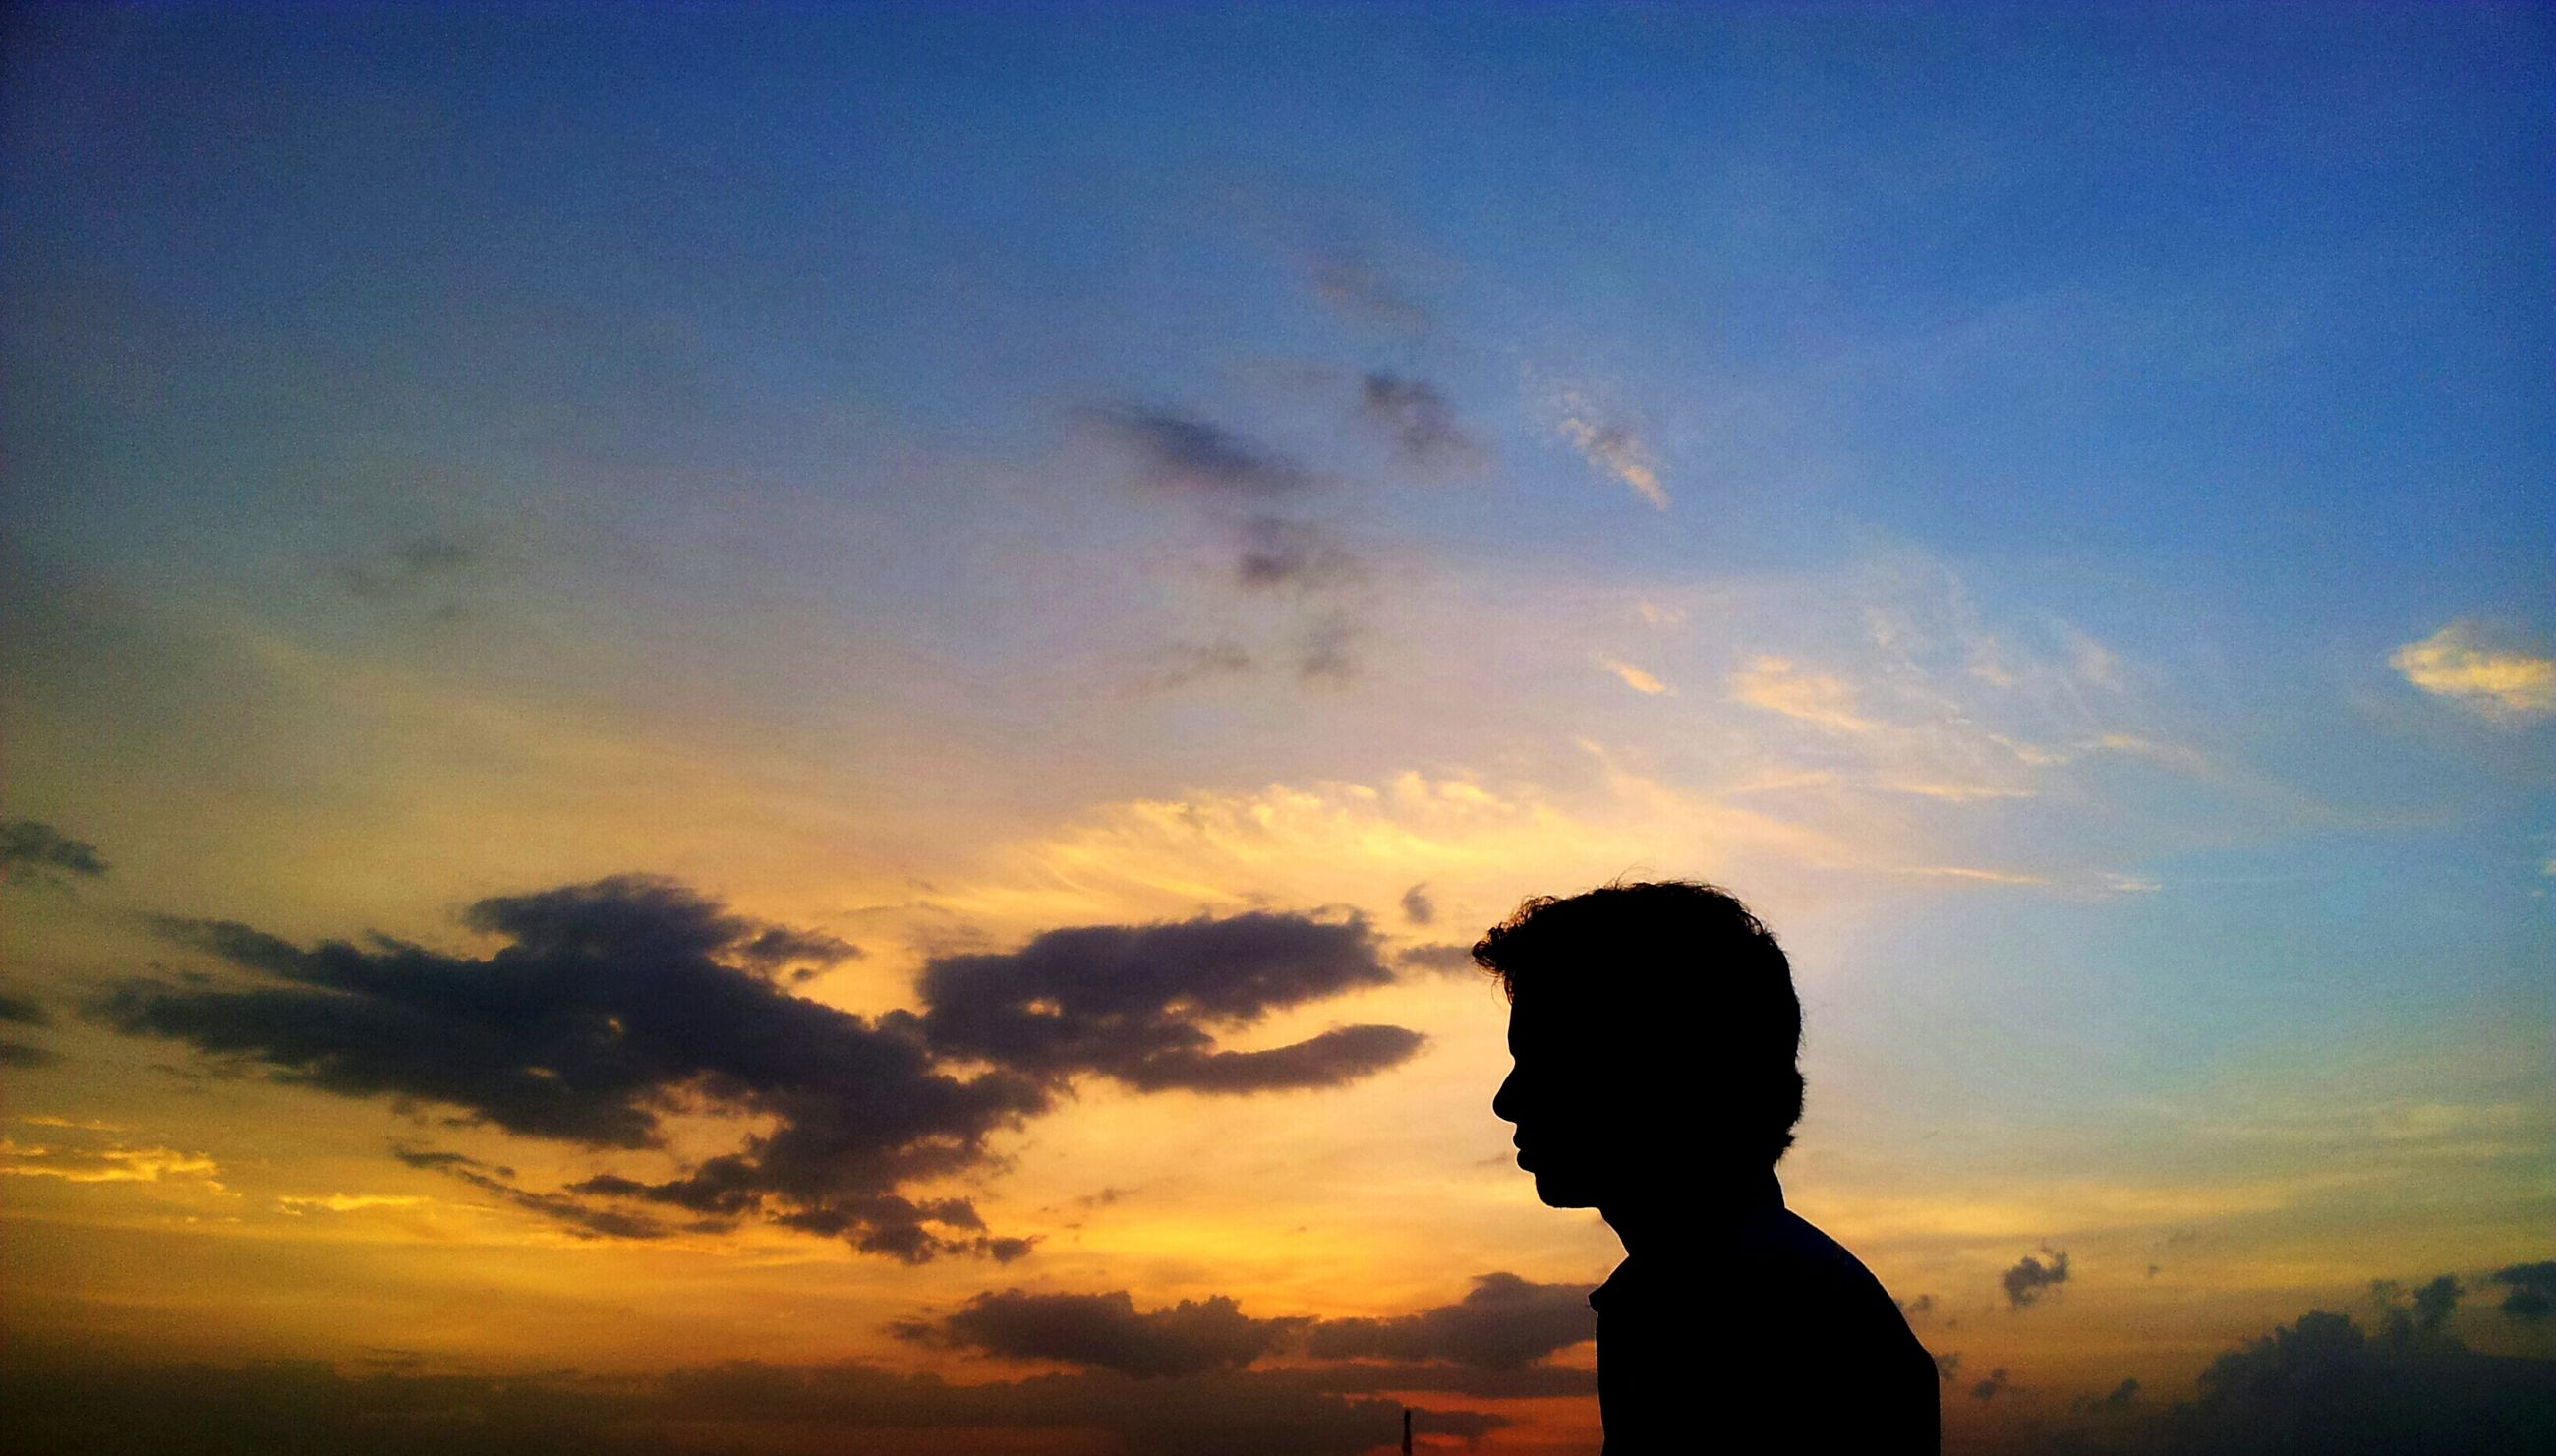 sunset, silhouette, leisure activity, lifestyles, sky, orange color, cloud - sky, nature, beauty in nature, scenics, cloud, field, outdoors, atmospheric mood, tranquility, atmosphere, moody sky, tranquil scene, sun, enjoying